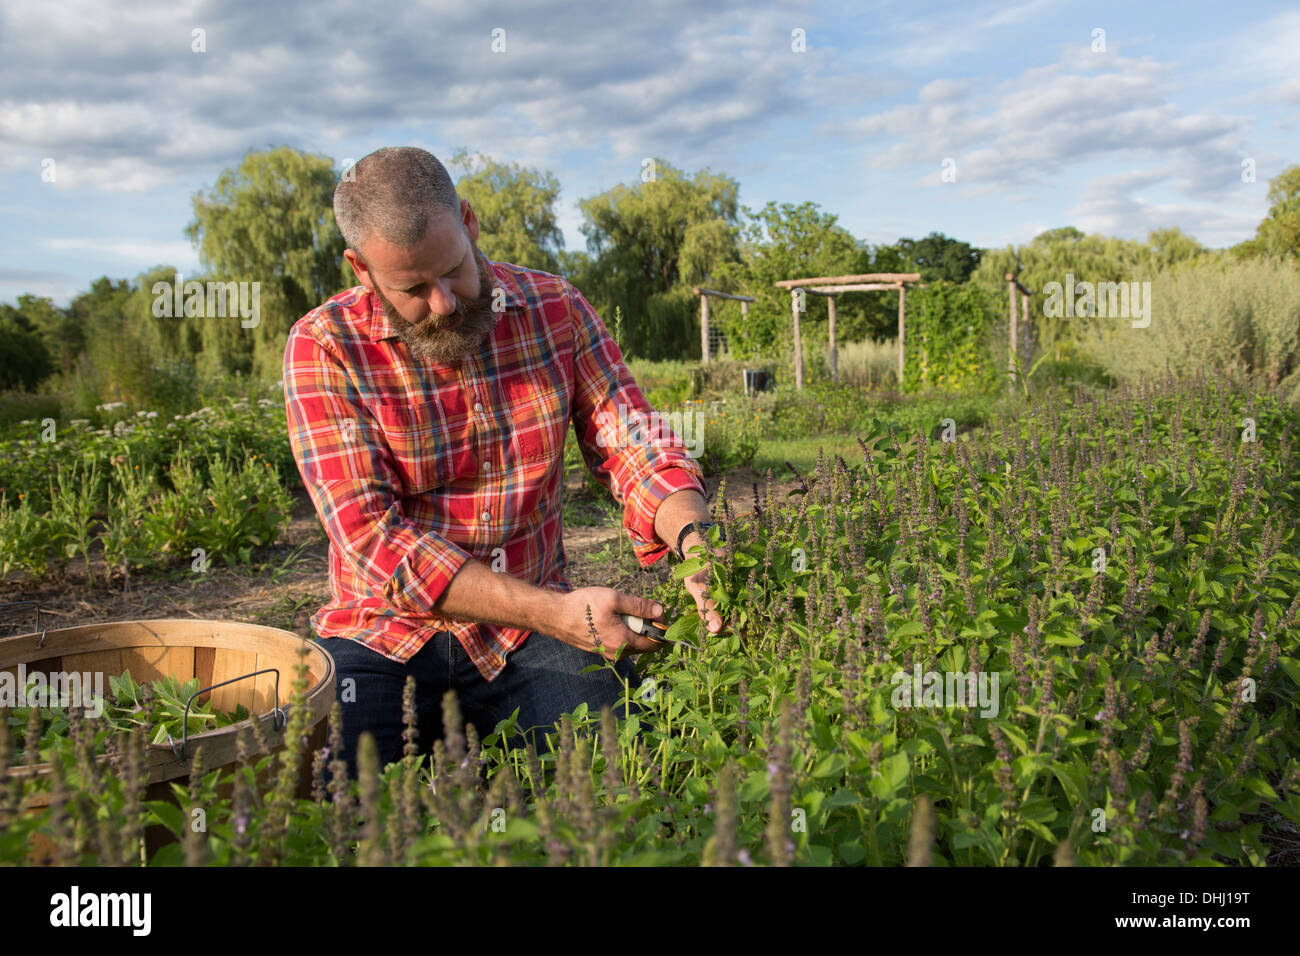 Mature man working on herb farm Stock Photo